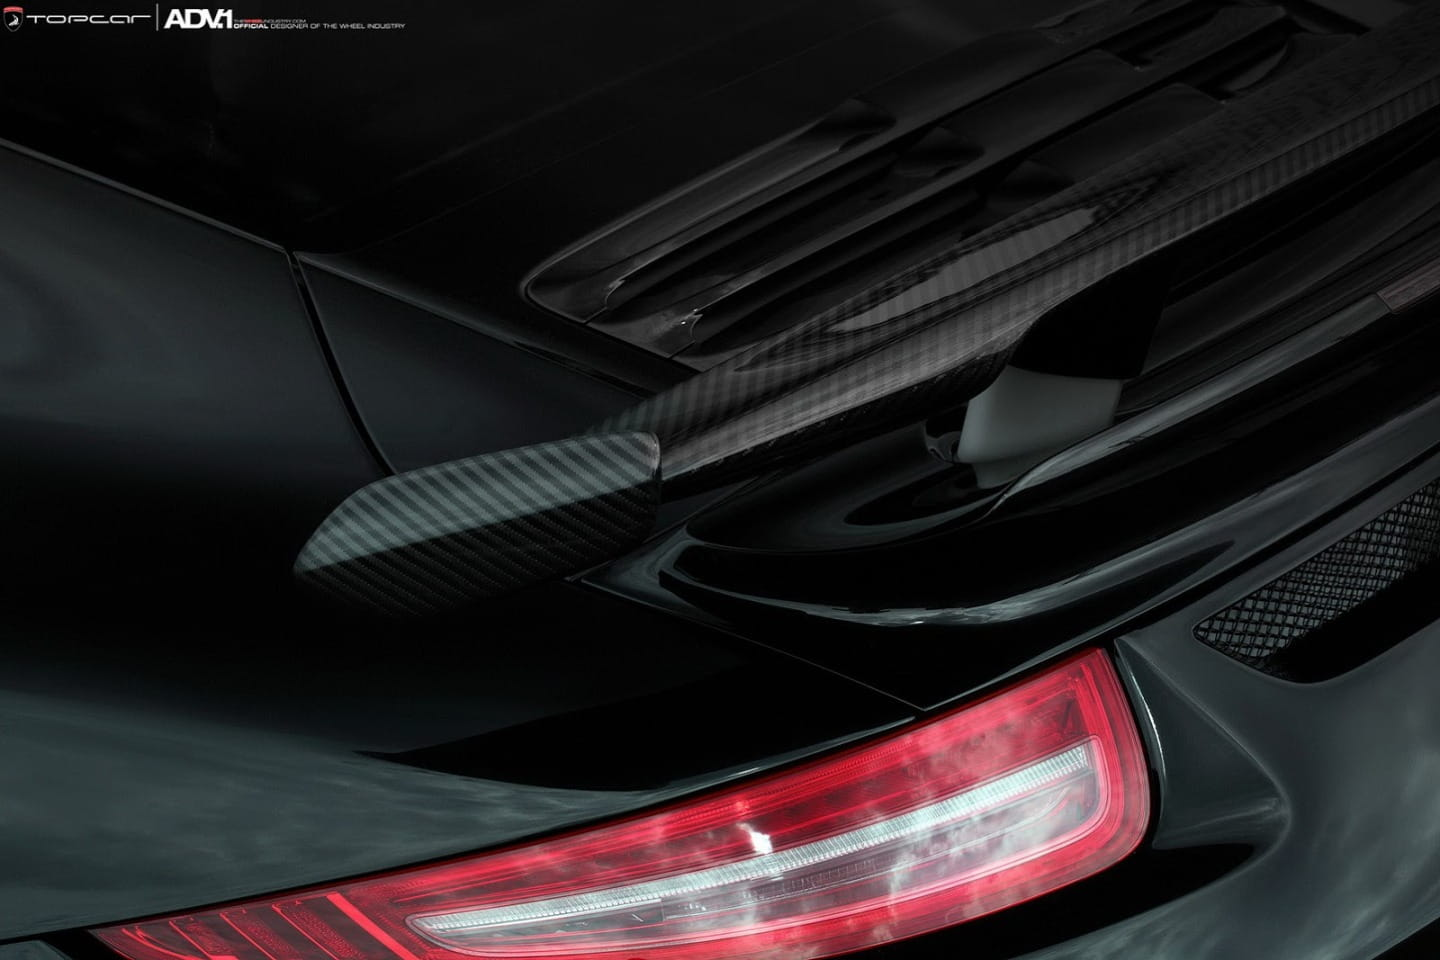 porsche_911_turbo_S_topcar_DM_2015_8